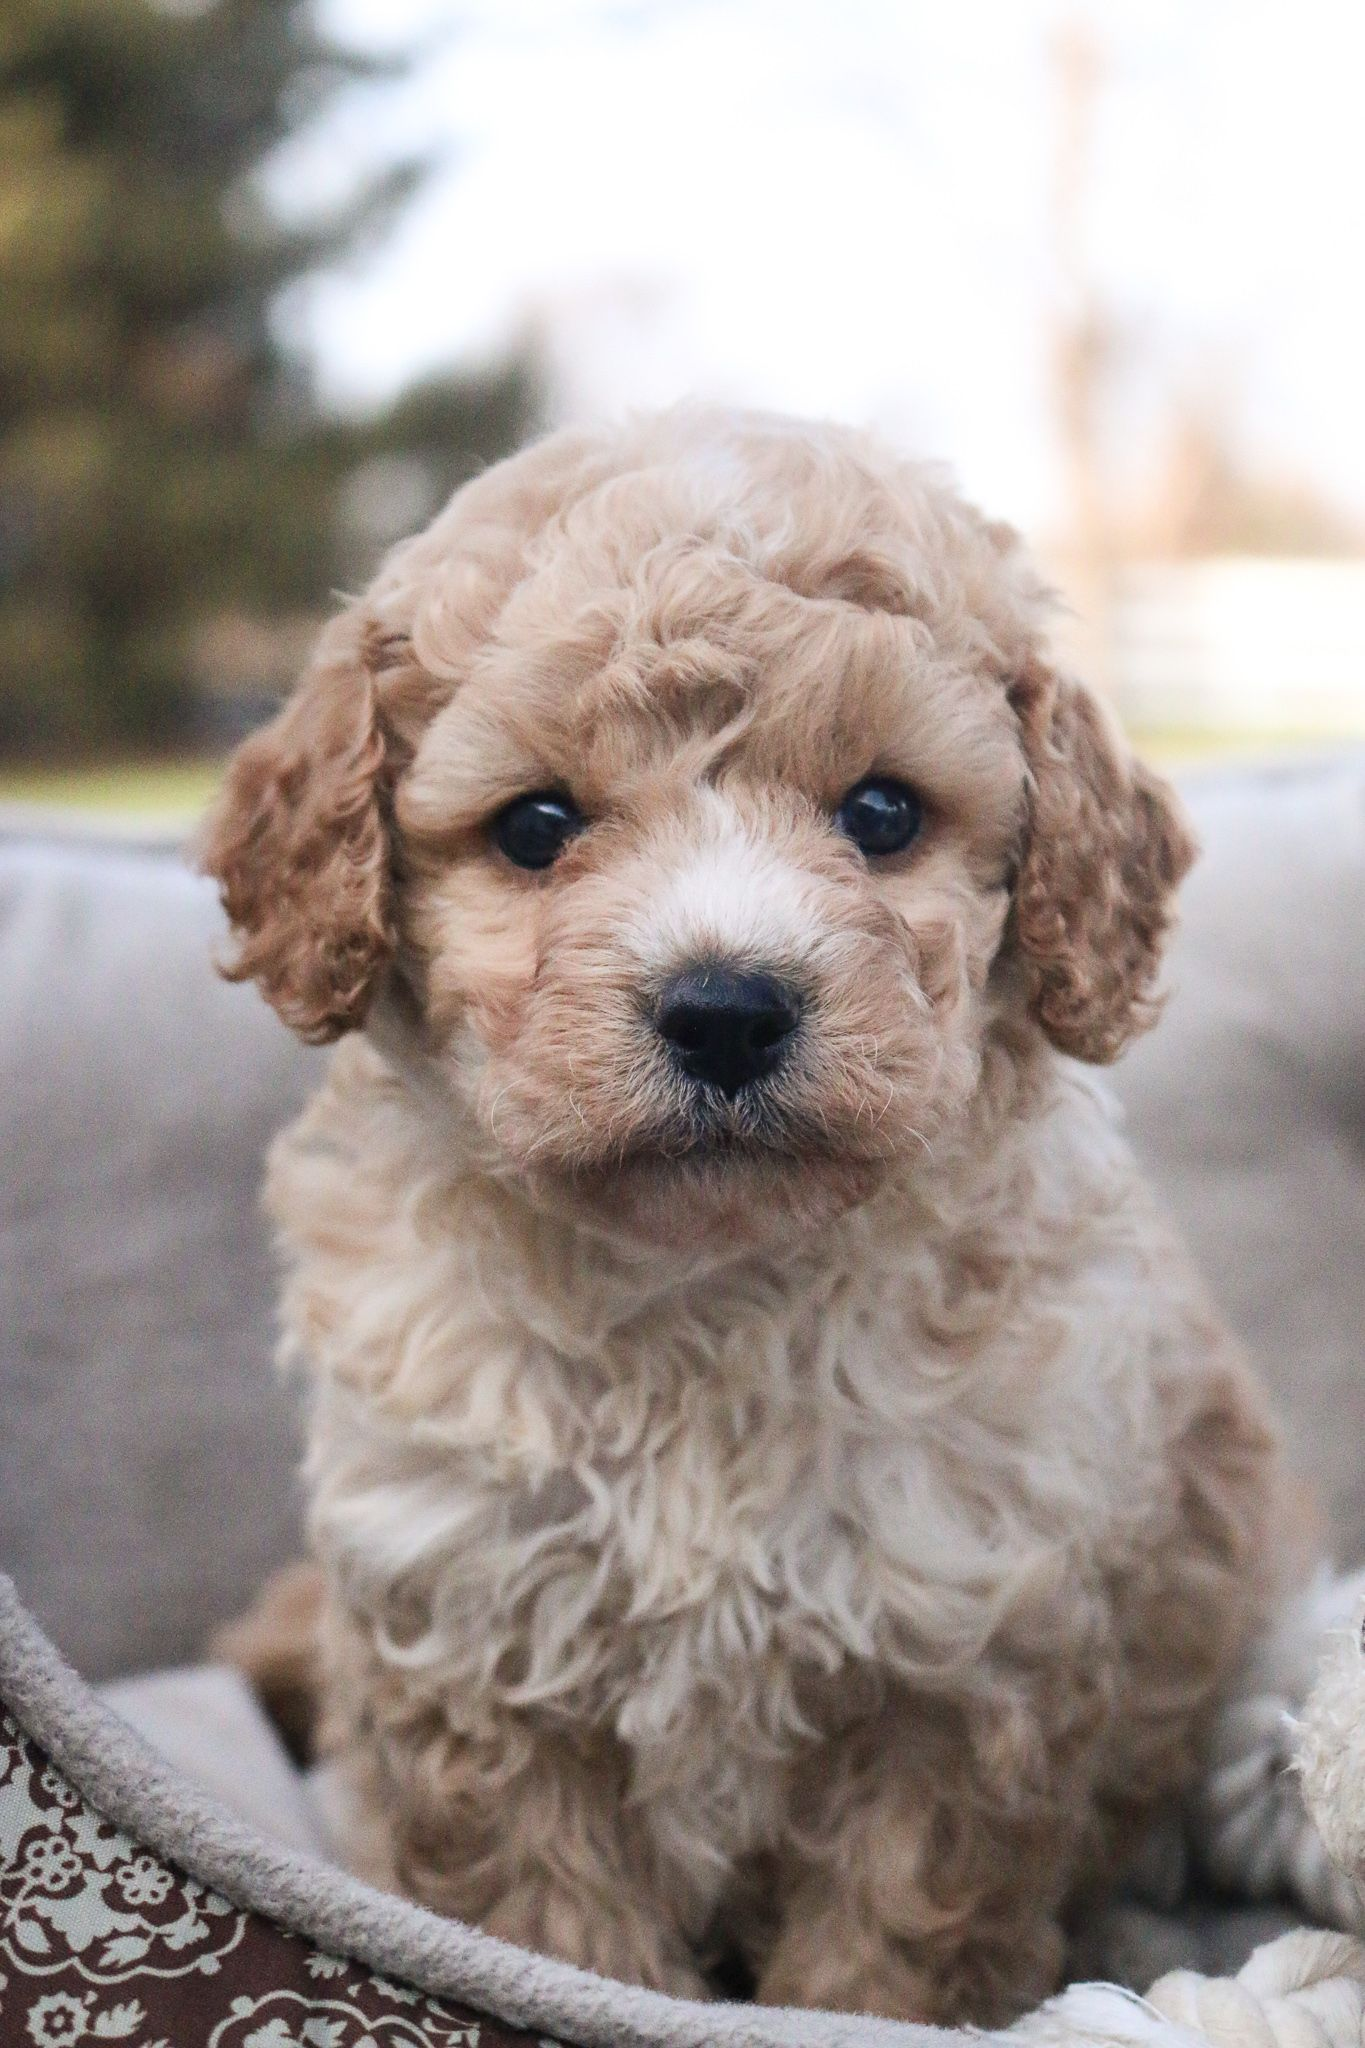 Cavapoolove With A Heartofgold These Adorable Cavapoo